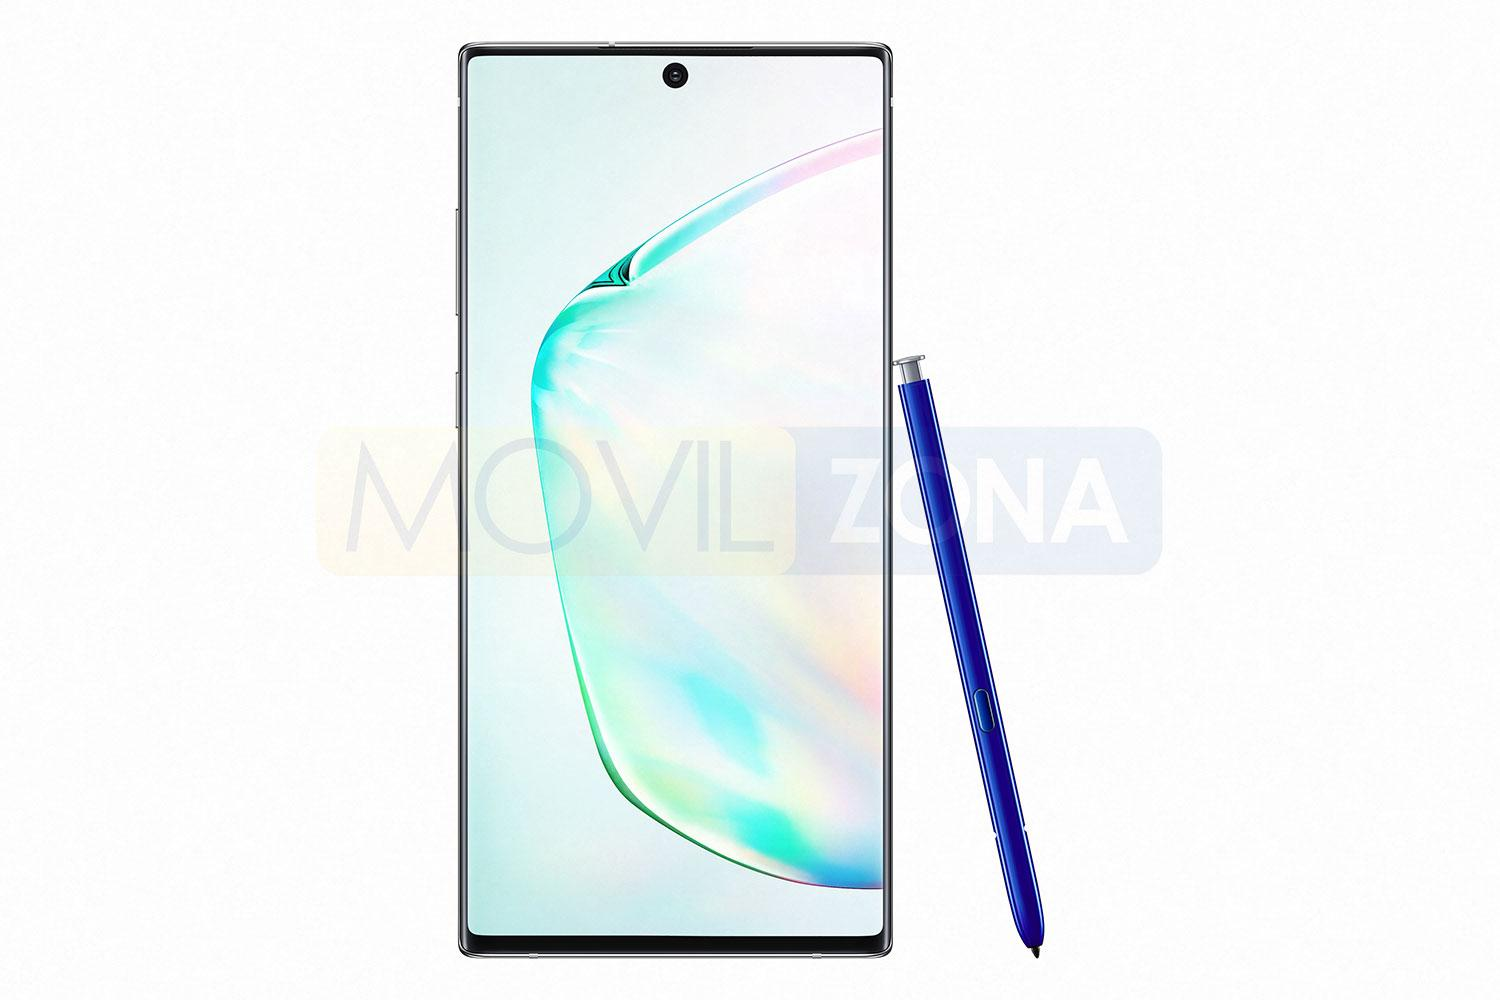 Samsung Galaxy Note 10 Plus con lápiz azul